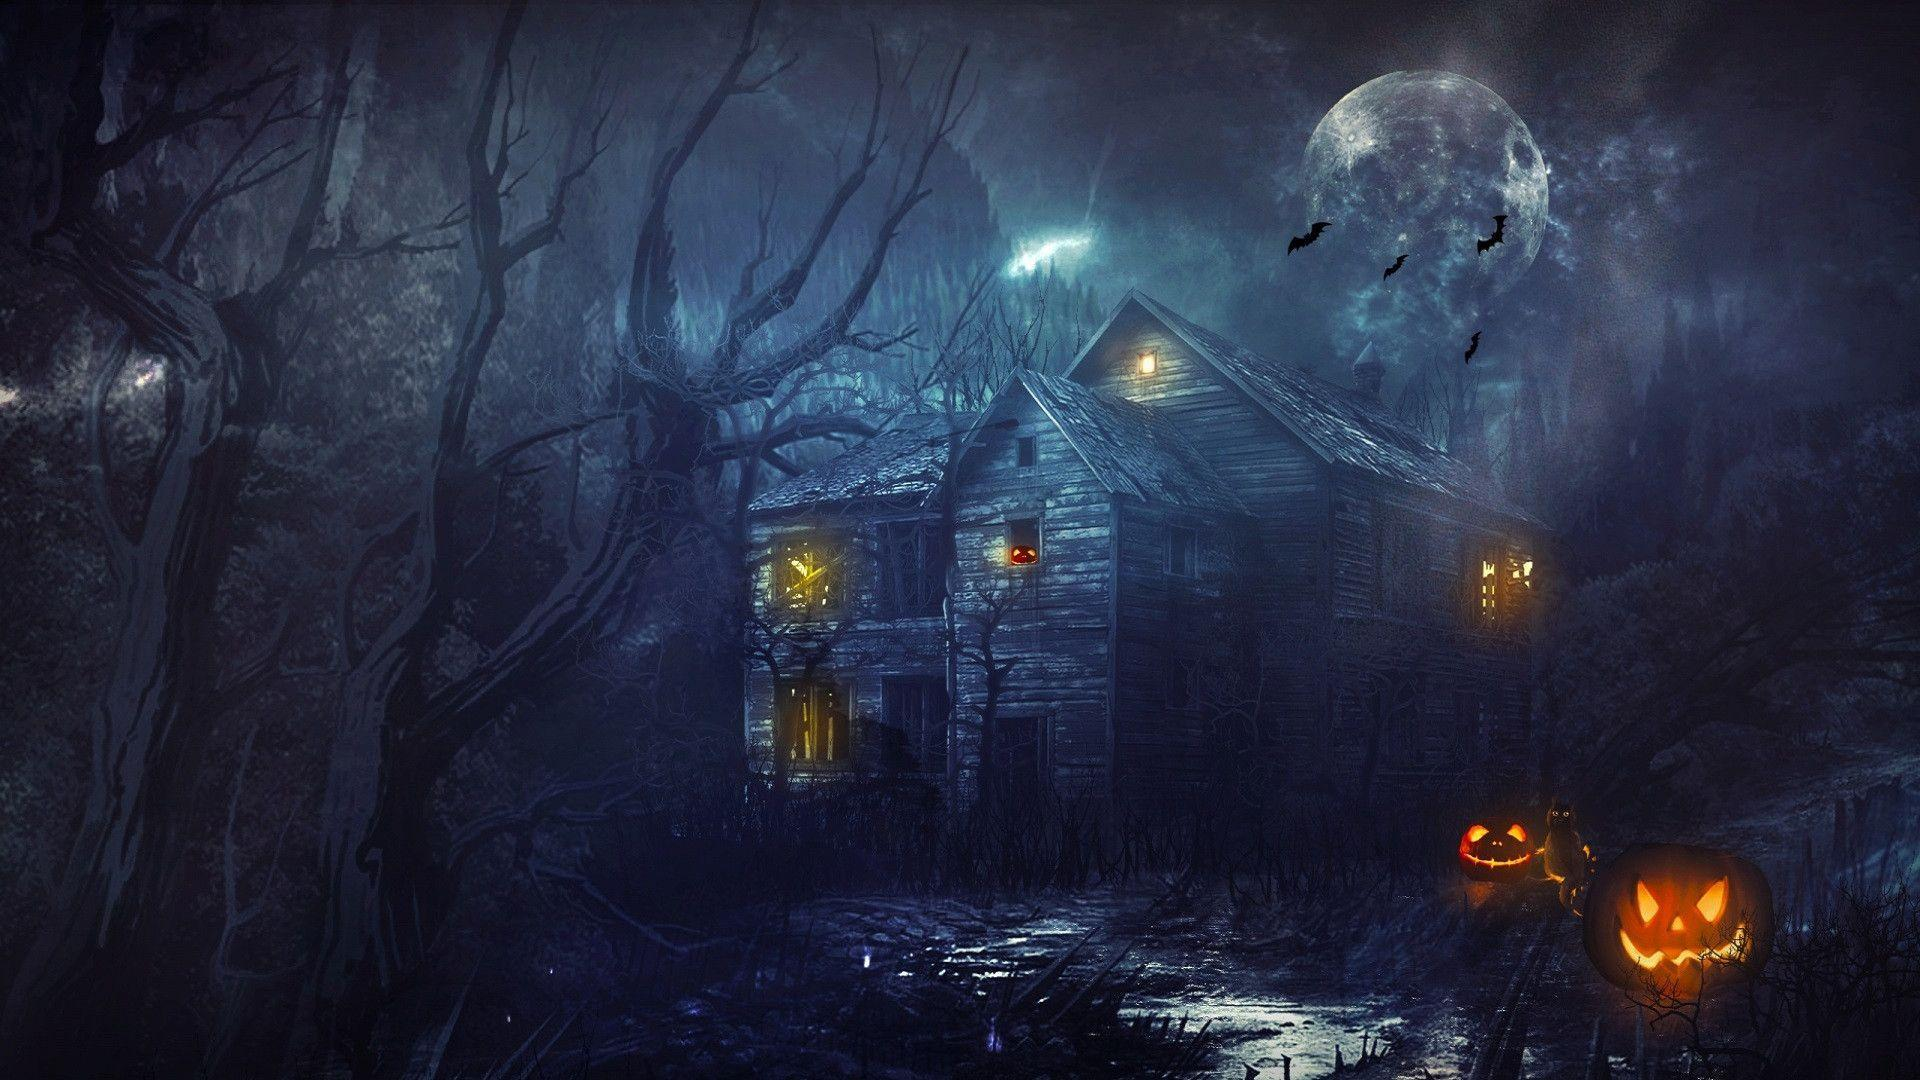 Halloween Backgrounds Pictures - Wallpaper Cave